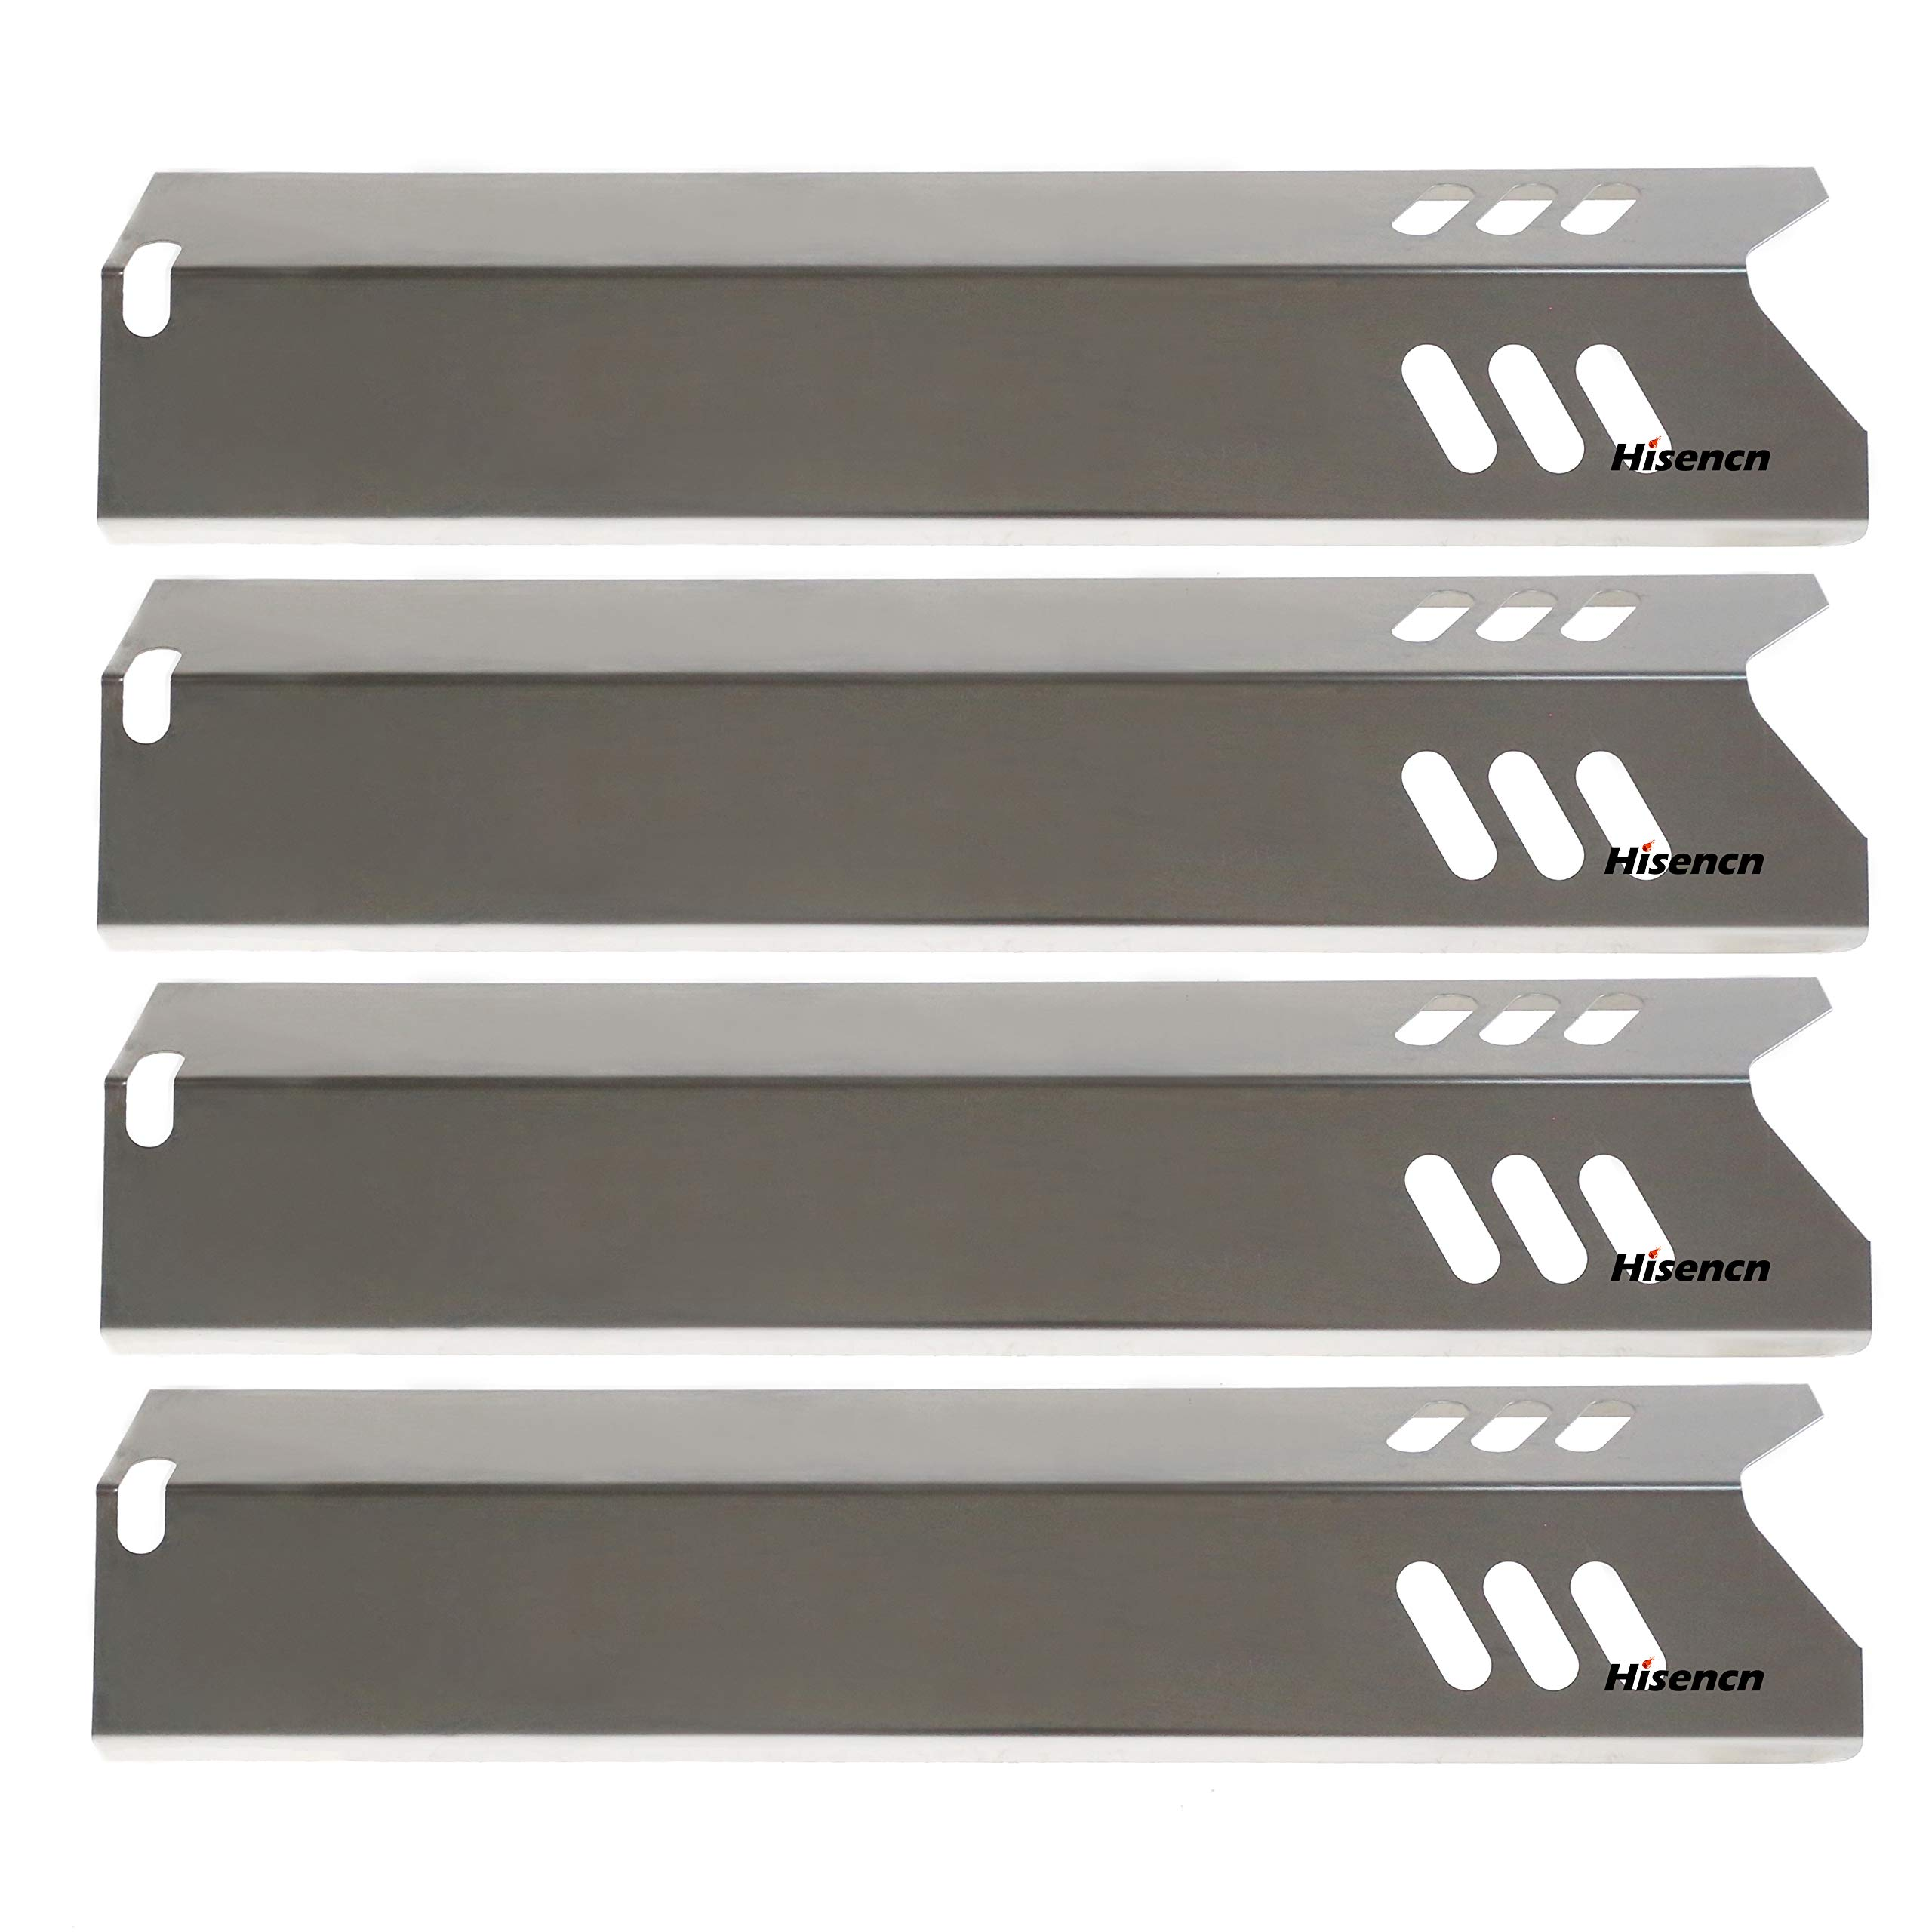 Hisencn 4PK Grill Replacement Parts for Uniflame GBC1059WB, Backyard Grill GBC1255W, Better Home and Garden, 5-Pack 15 inch Stainless Steel Heat Plate Shield Tent Flame Tamer BBQ Burner Cover